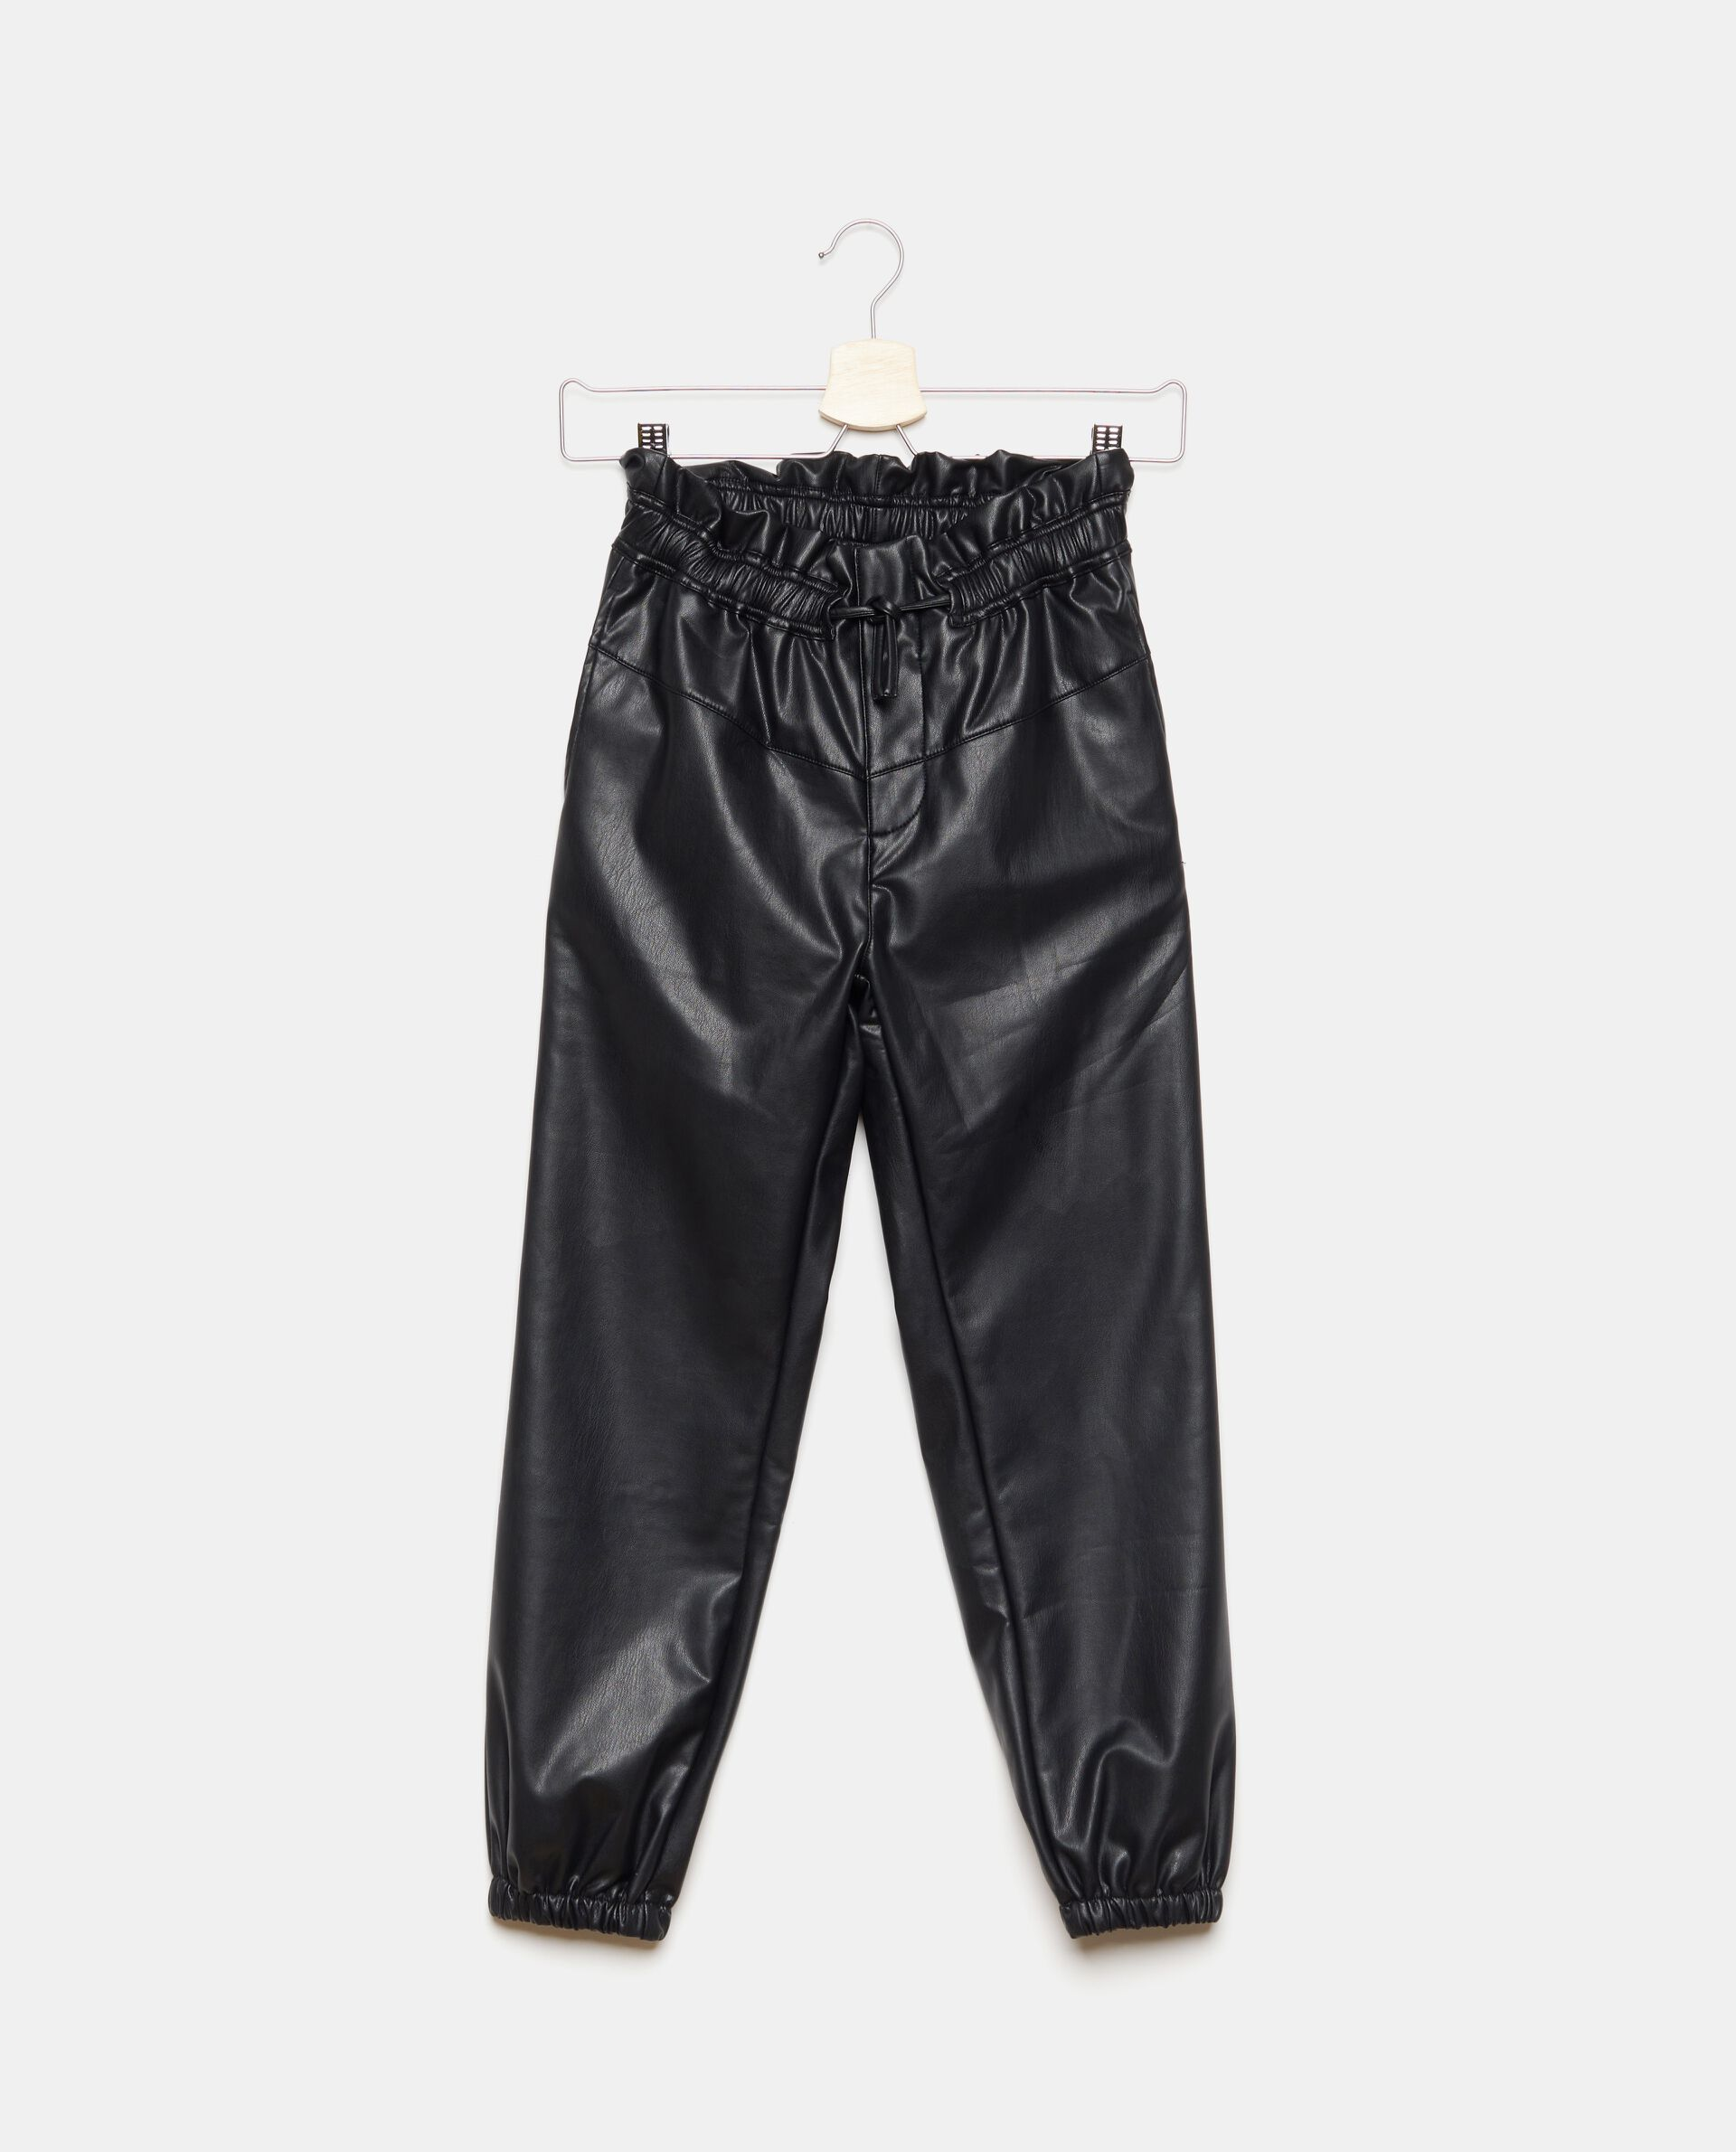 Pantaloni in ecopelle con coulisse